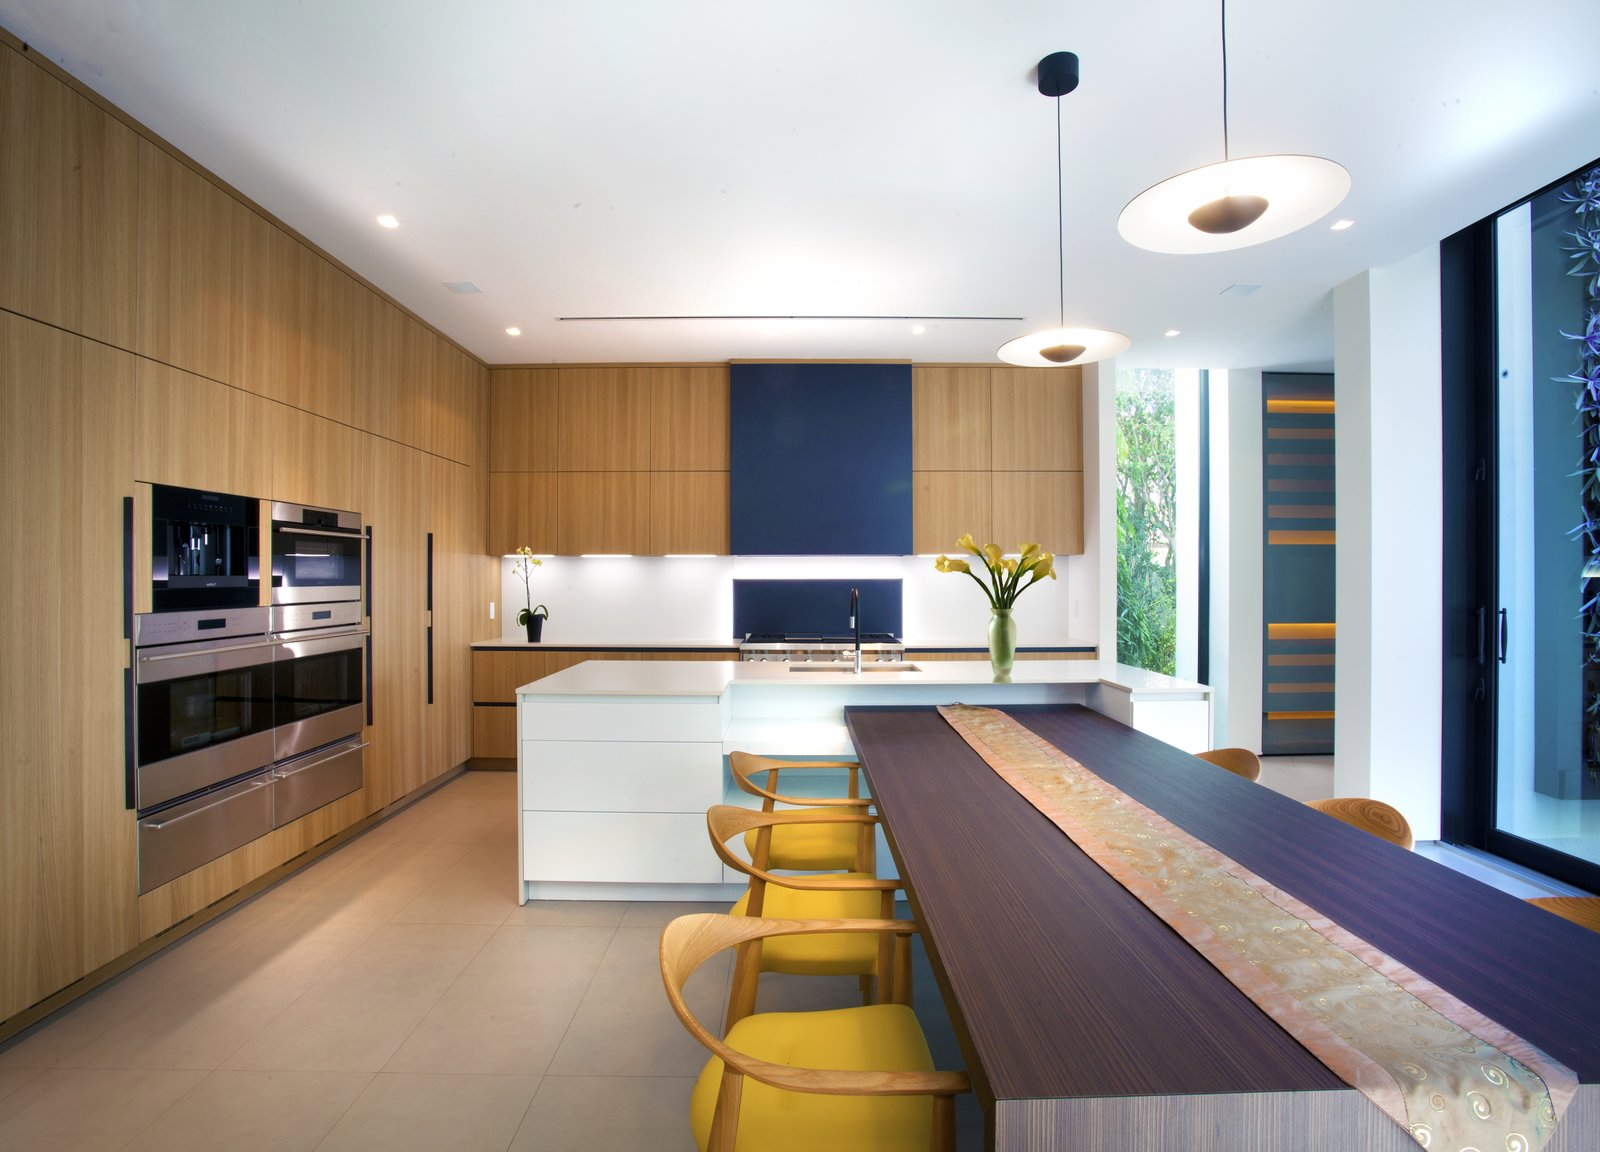 Kitchen Allison Road Residence by Choeff Levy Fischman